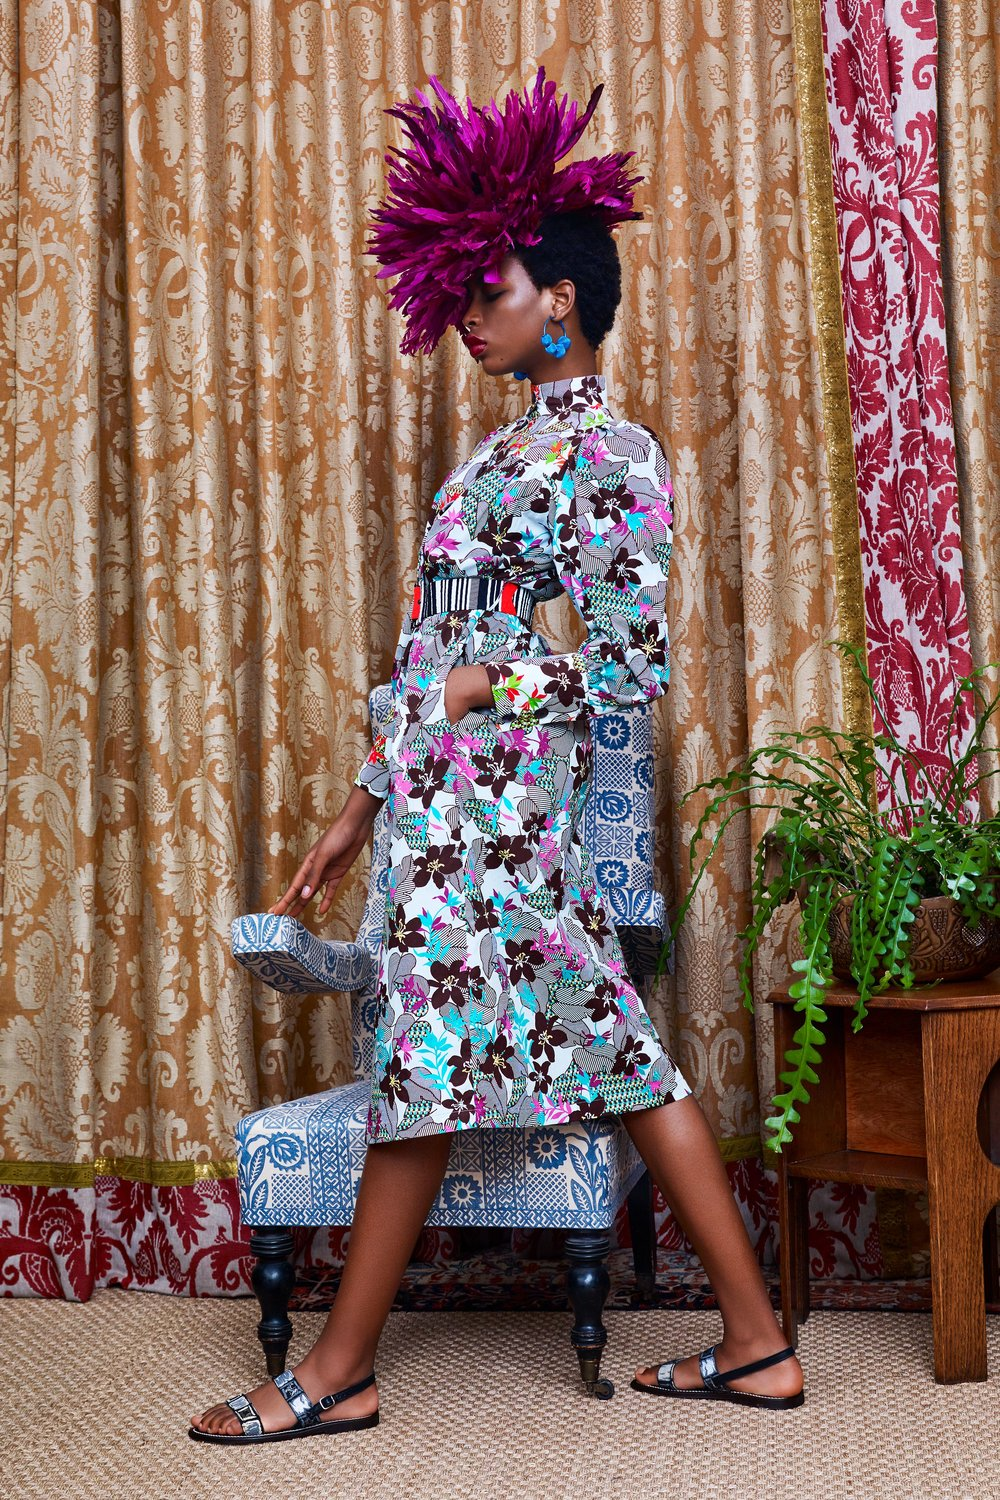 00014-duro-olowu-collection-spring-2019-ready-to-wear.jpg